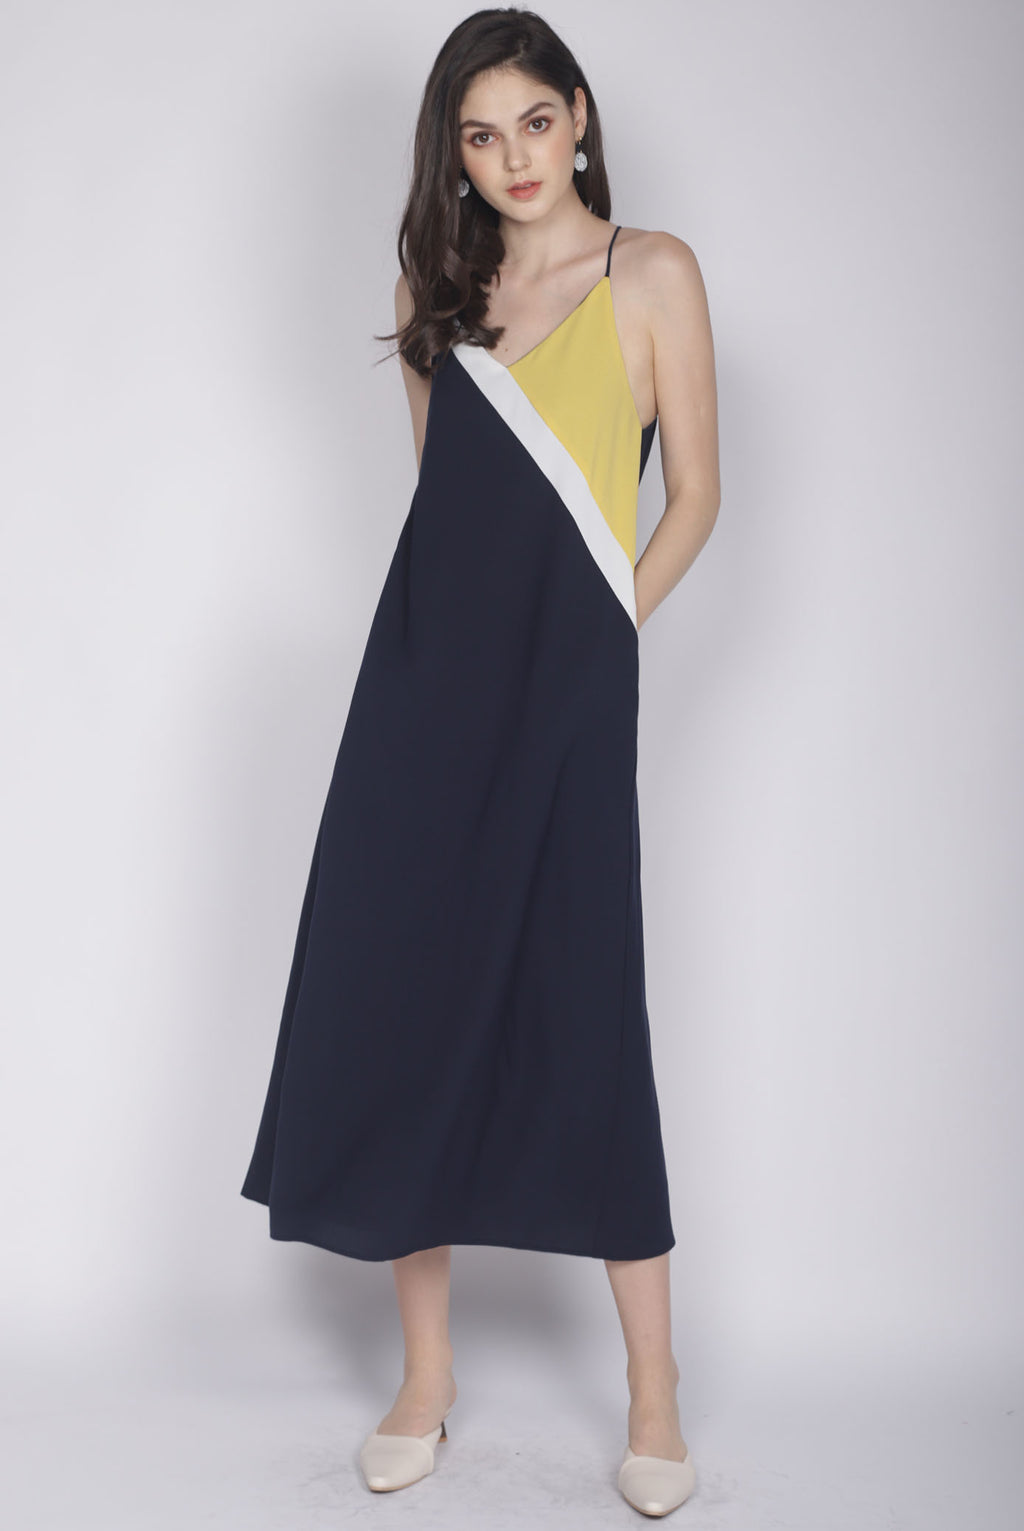 Delois Colour Block Maxi Dress In Mustard/Navy